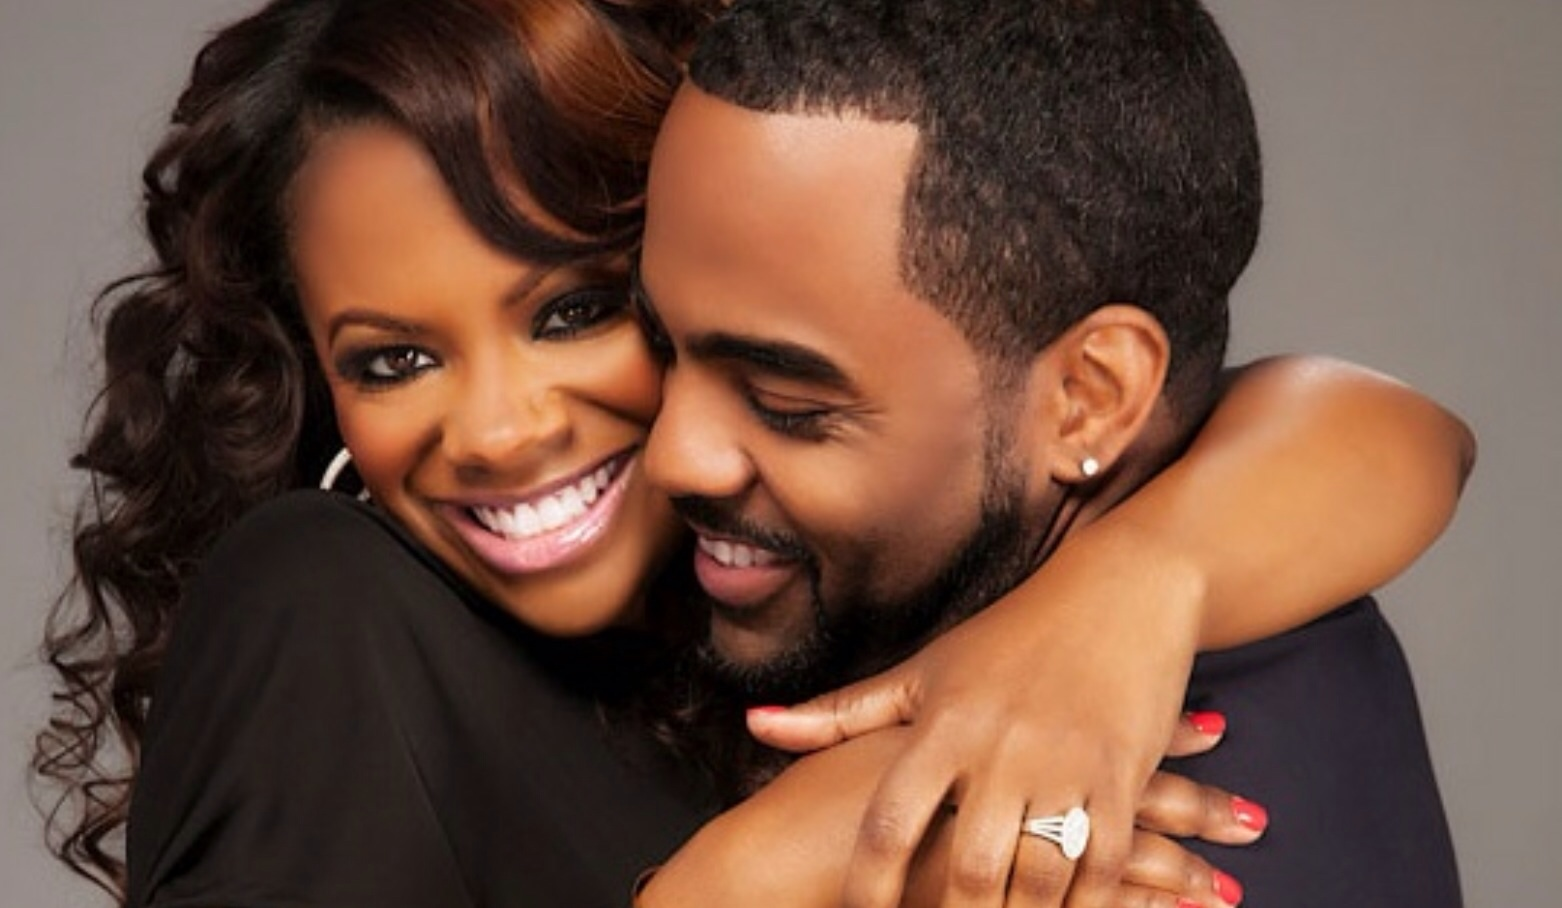 Power Couple Kandi Burruss And Todd Tucker Spoke At The Clark Atlanta University And Tiny Harris, Cynthia Bailey, Shamea Morton, And More Praised Them